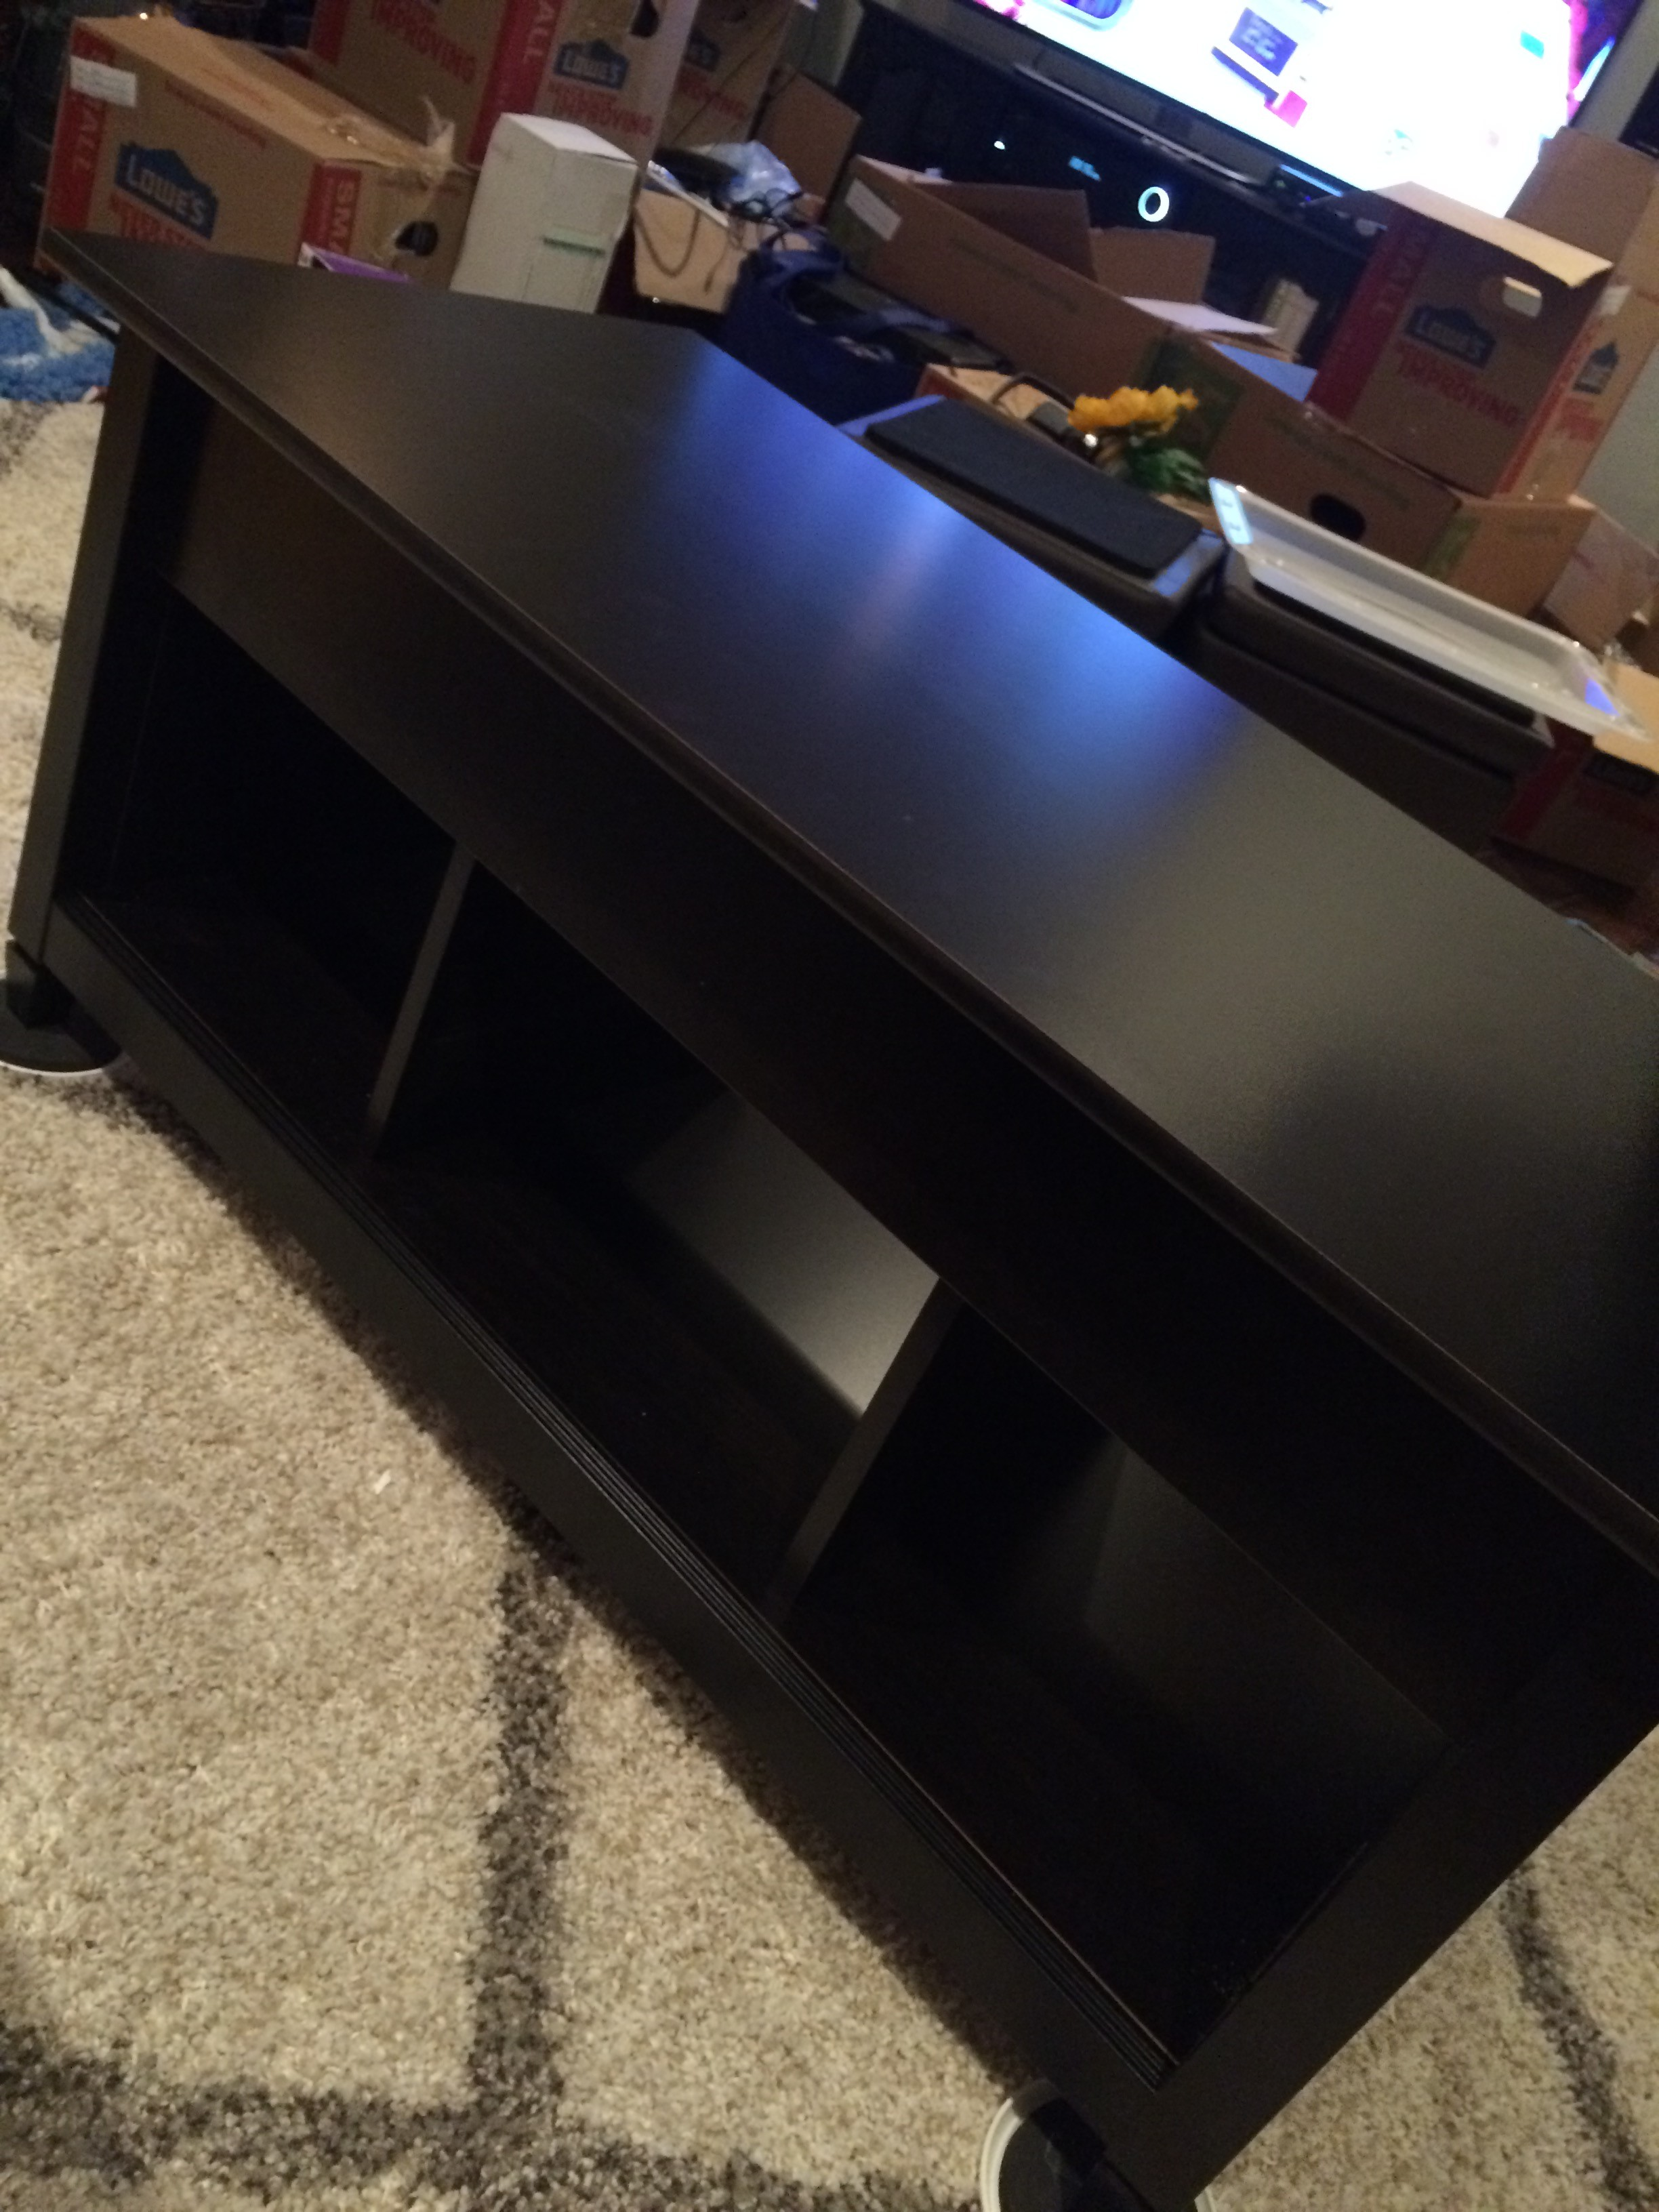 New retractable coffee table from Amazon